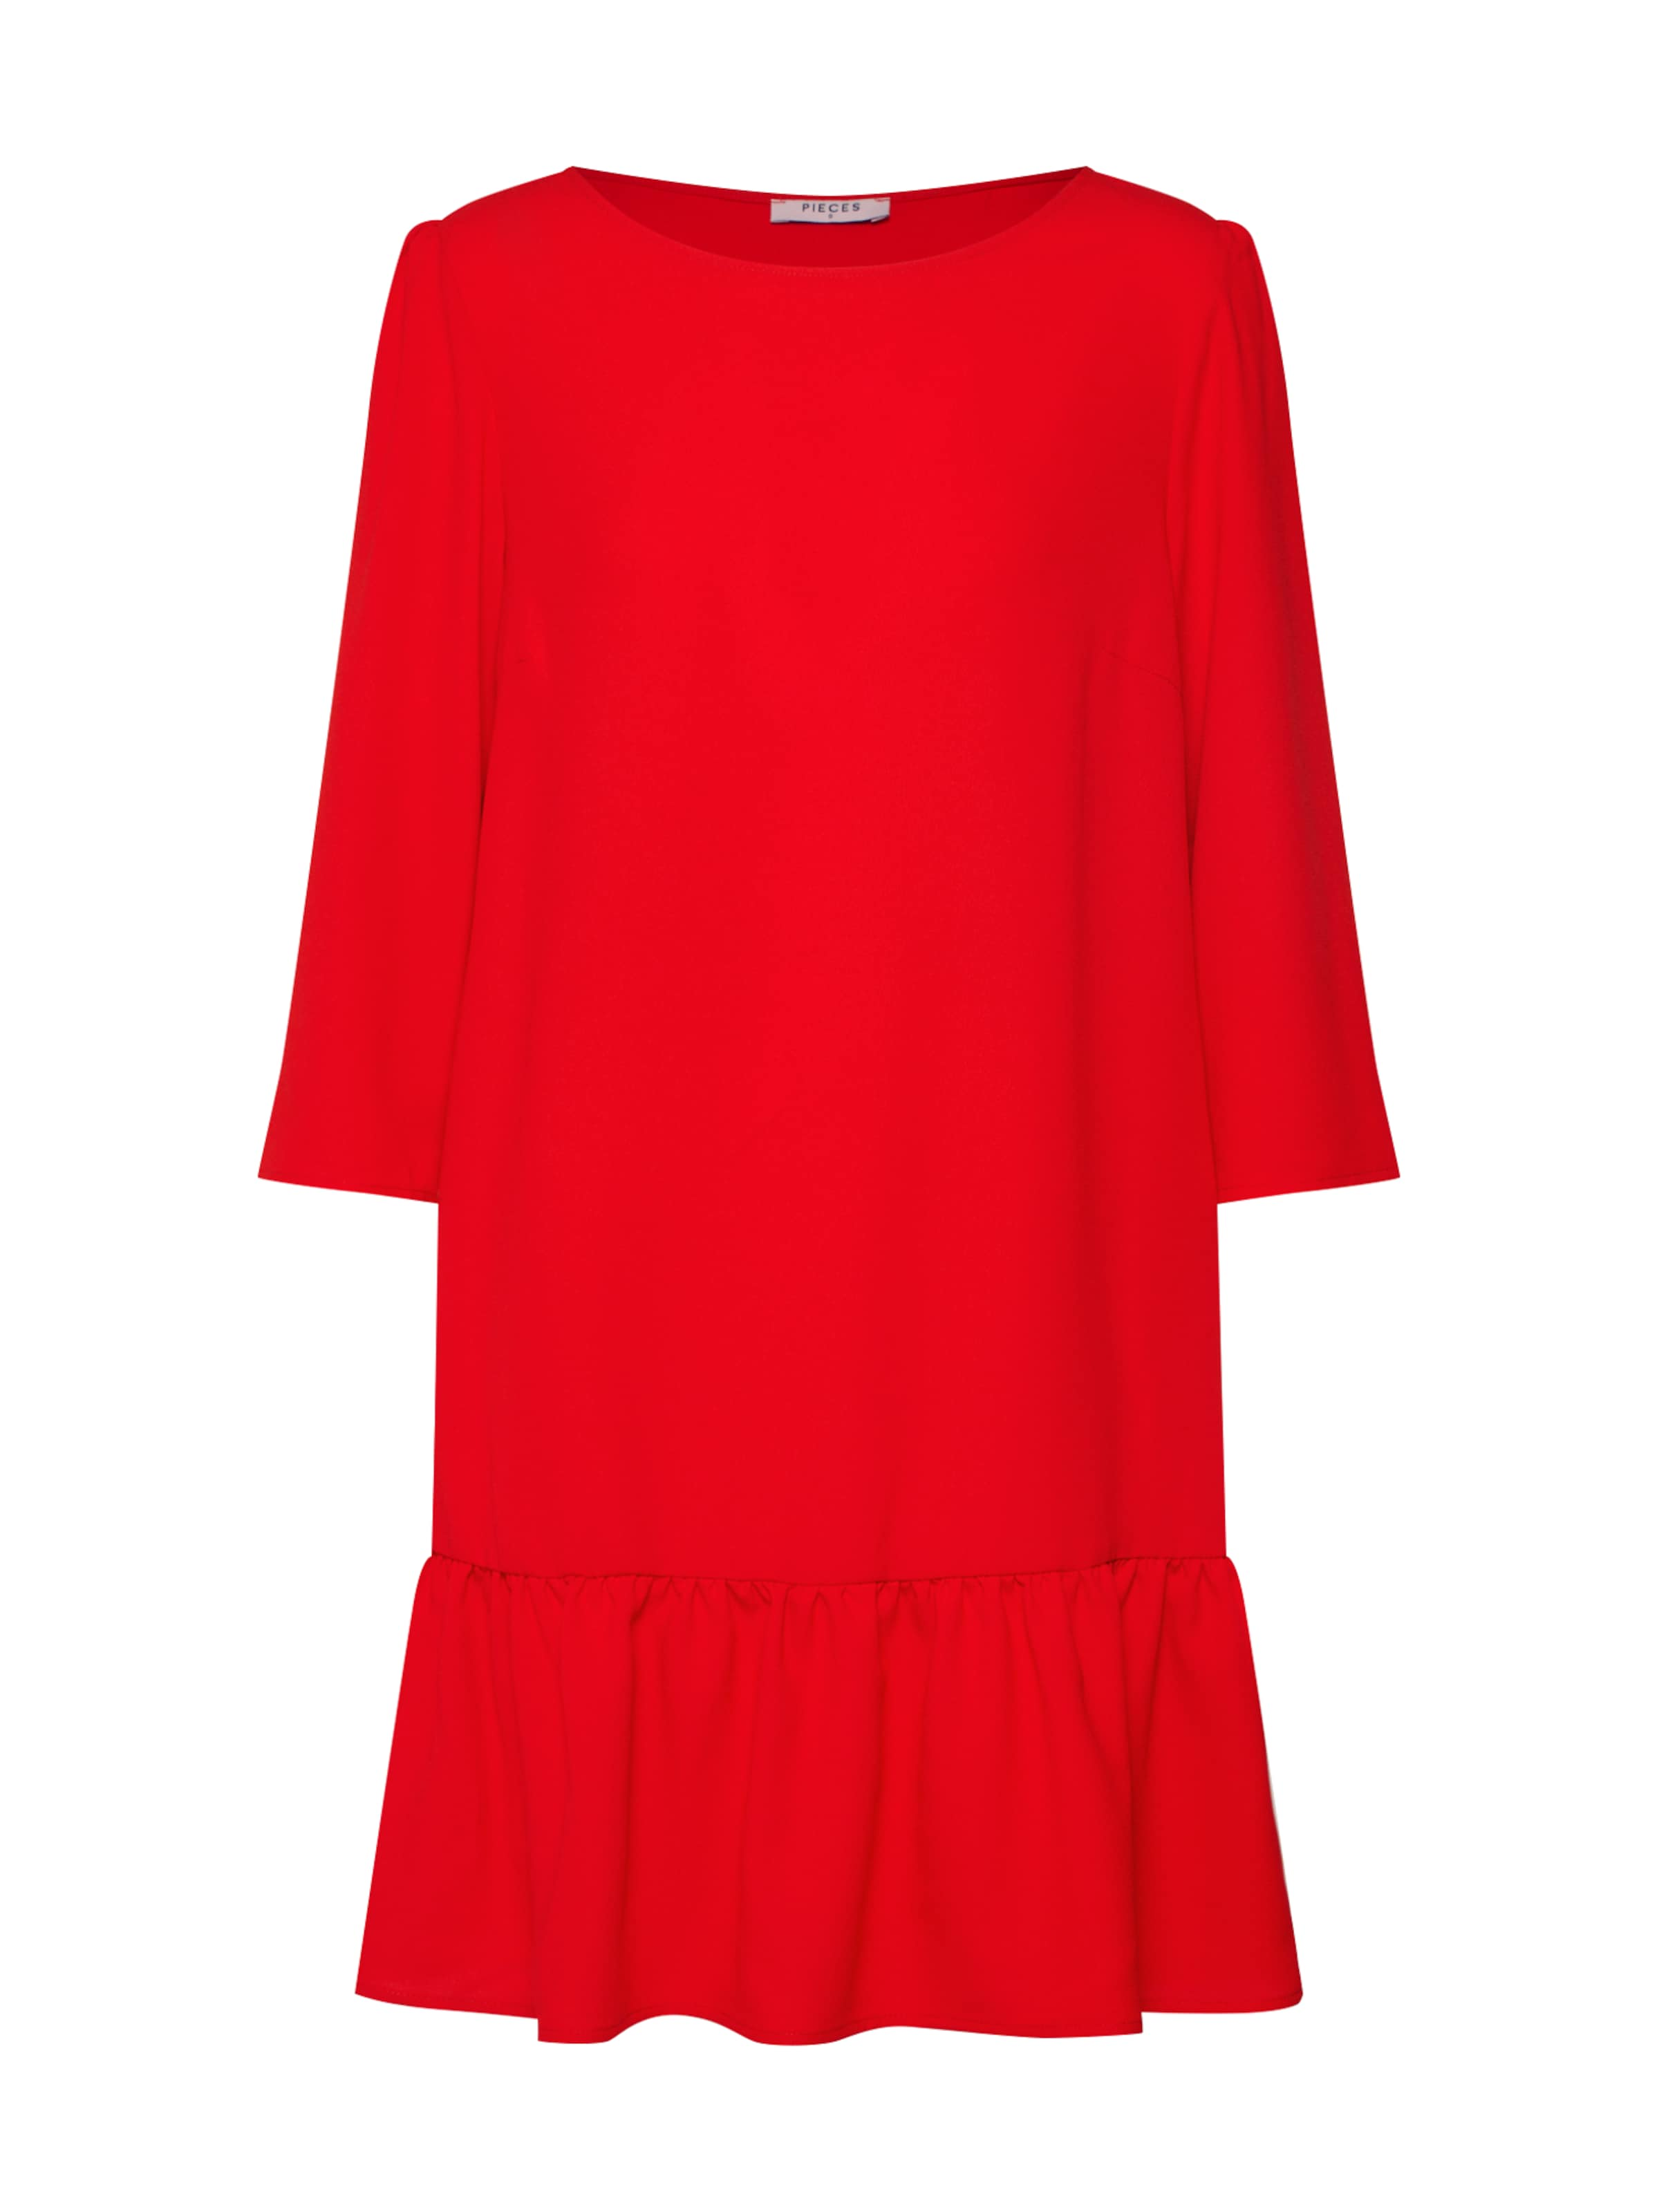 Pieces 'britney' Rouge Robe En Pieces shtrQdCx